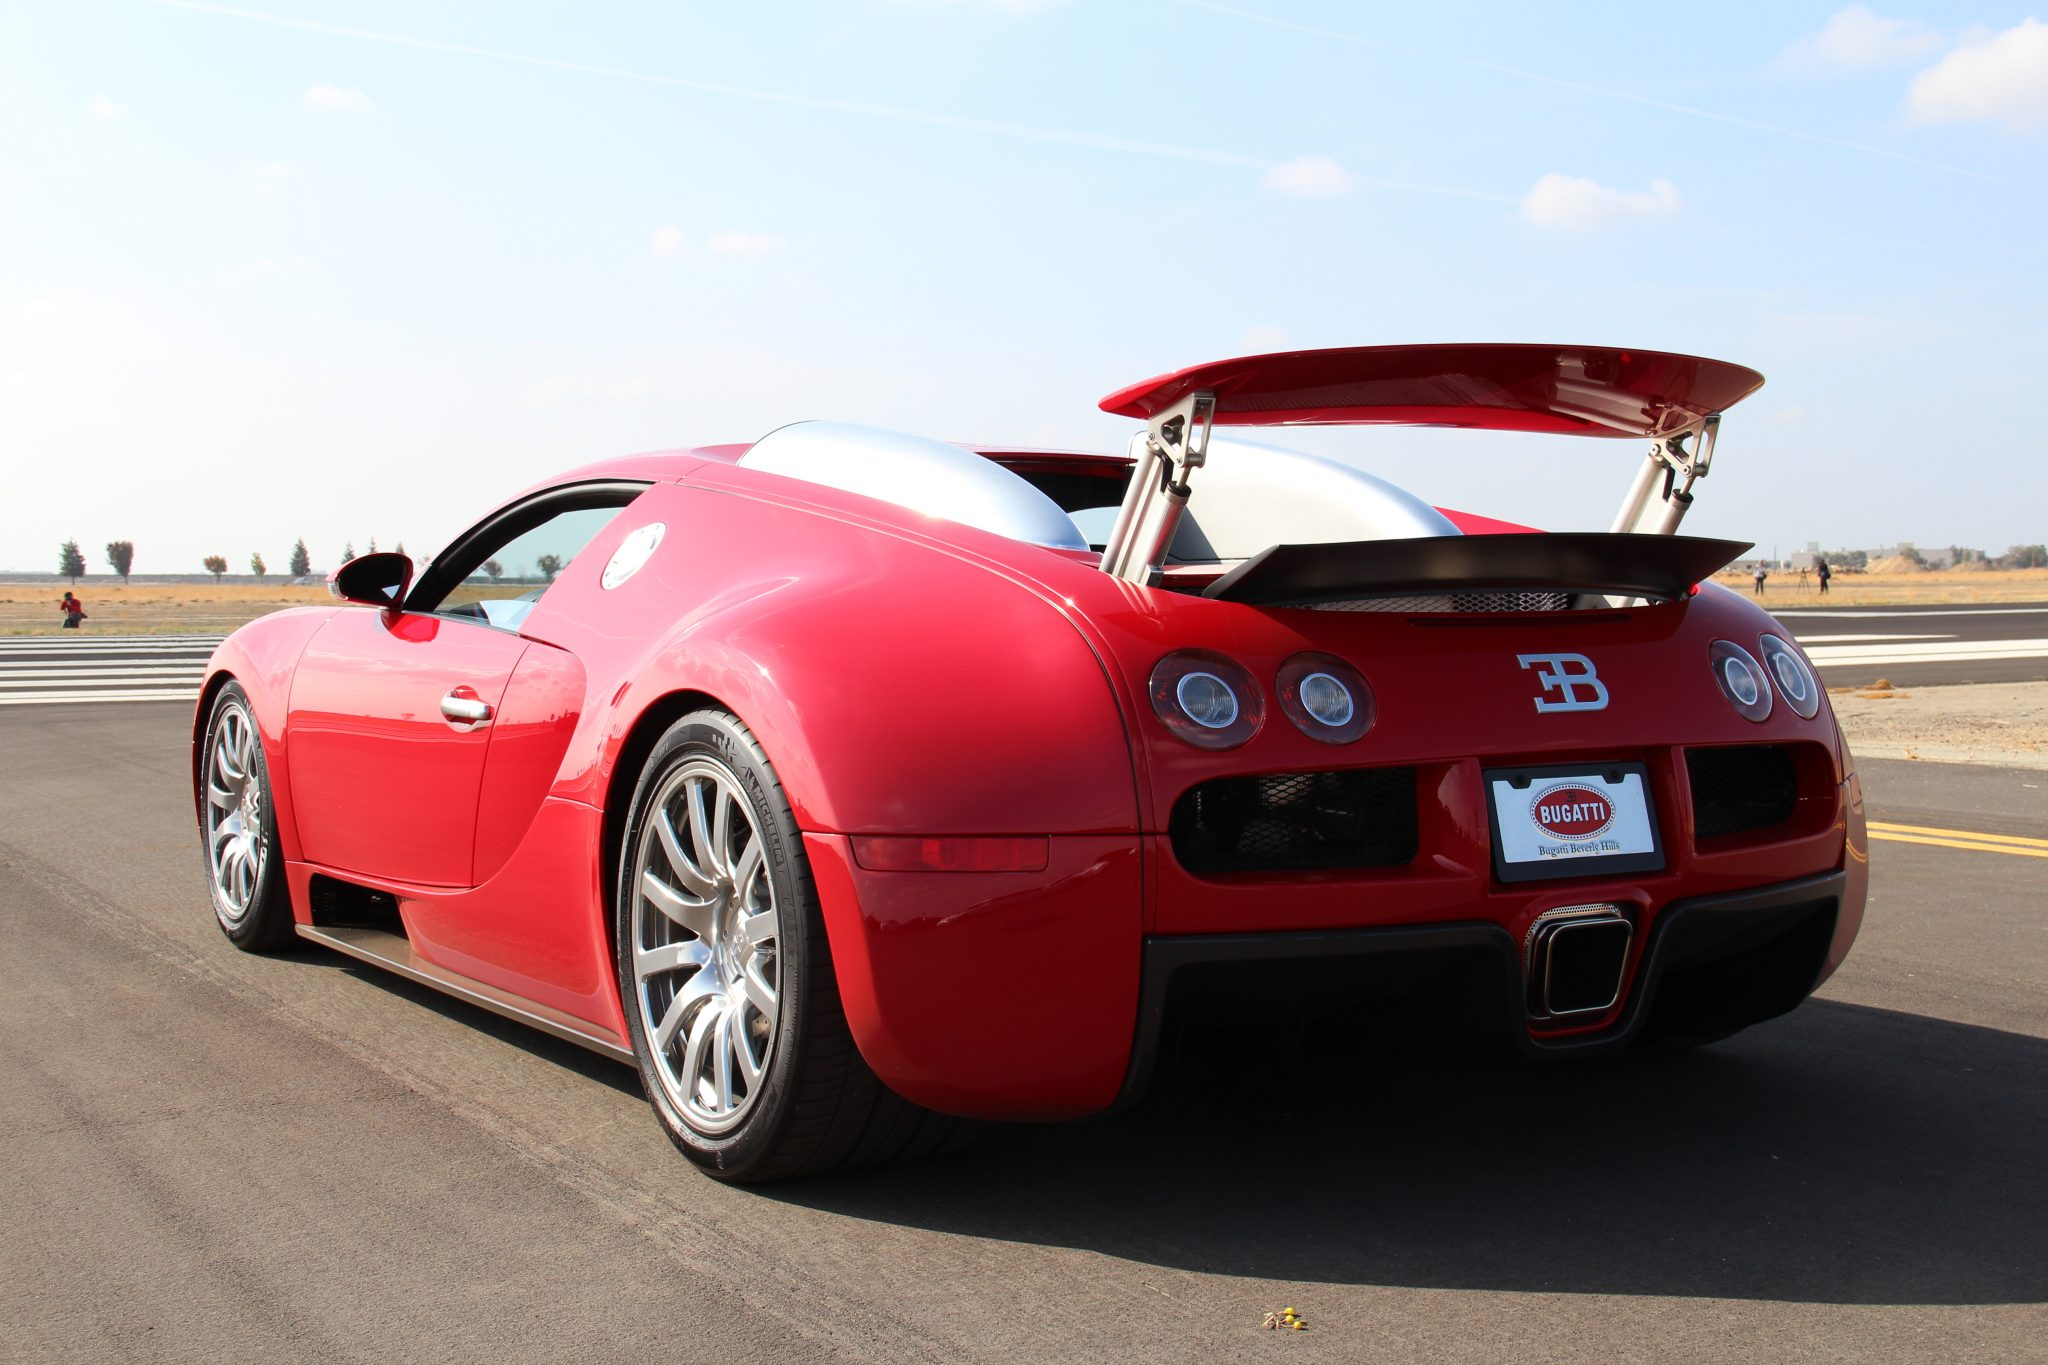 Rear 3/4 view of a red Bugatti Veyron